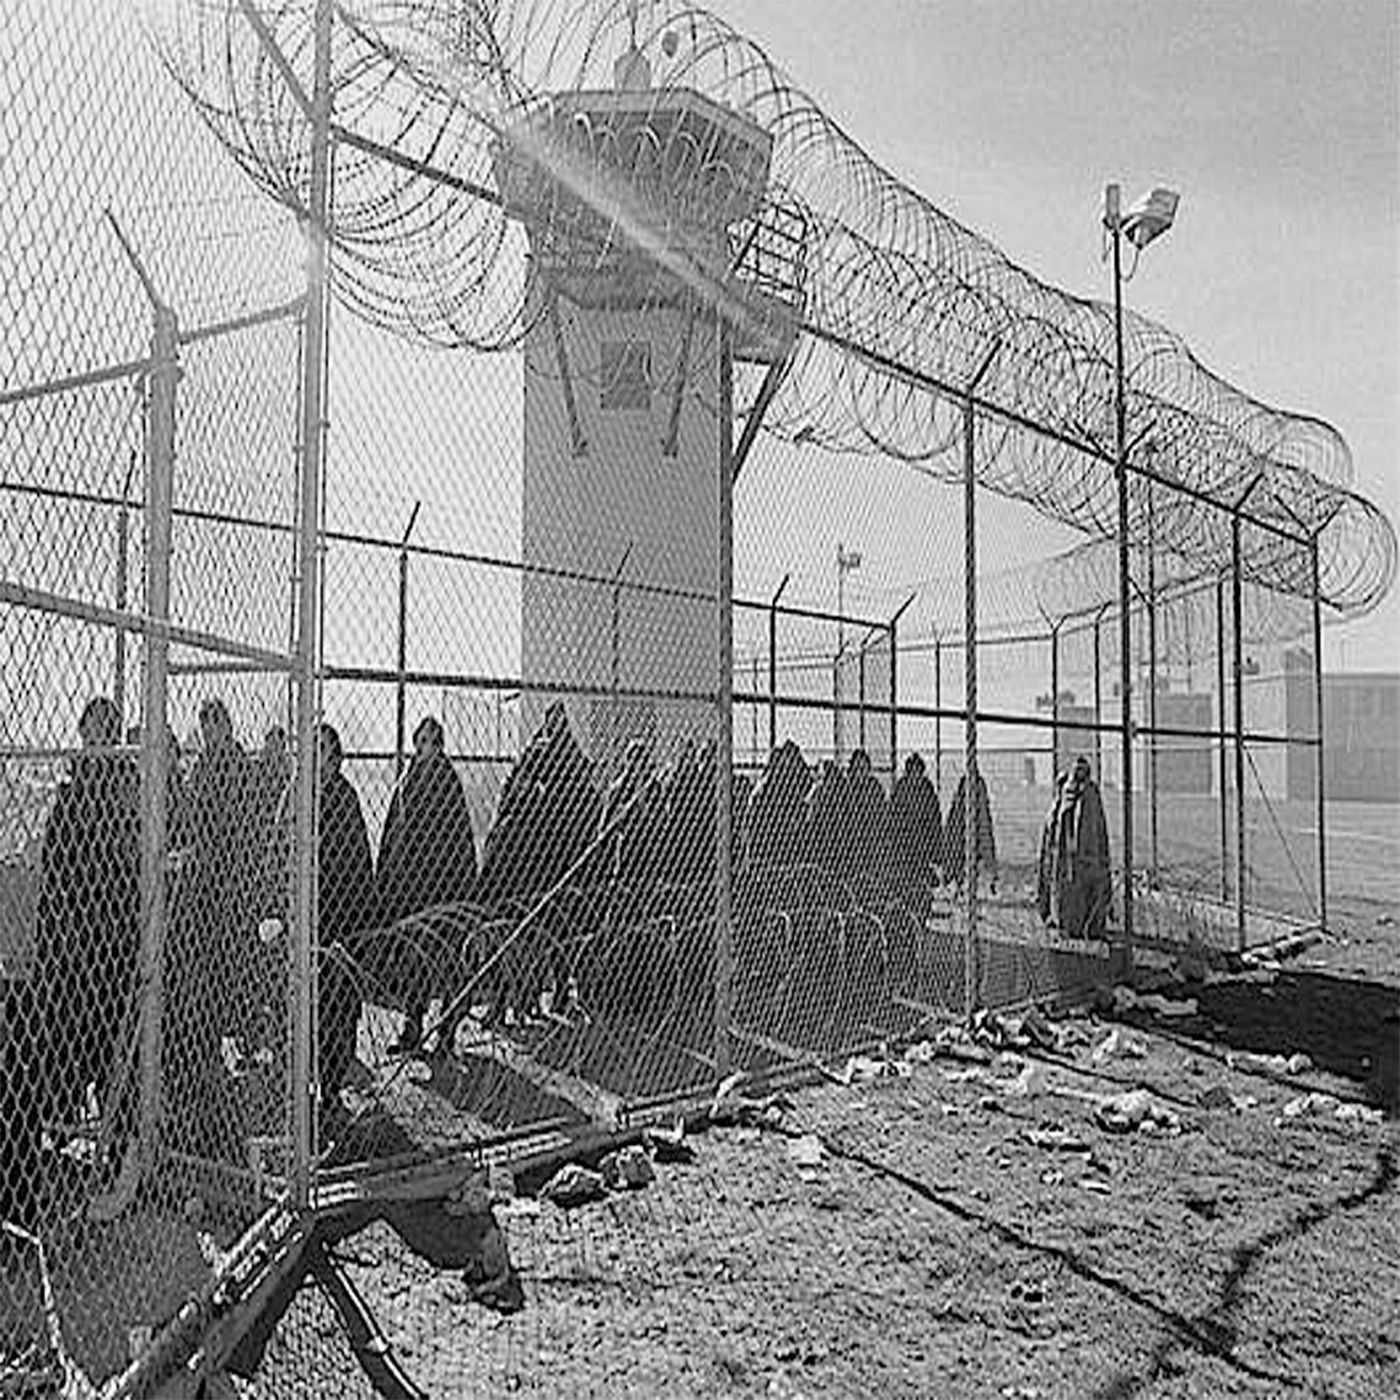 New Mexico State Penitentiary Riot (Part Three: The Devil's Butcher Shop)